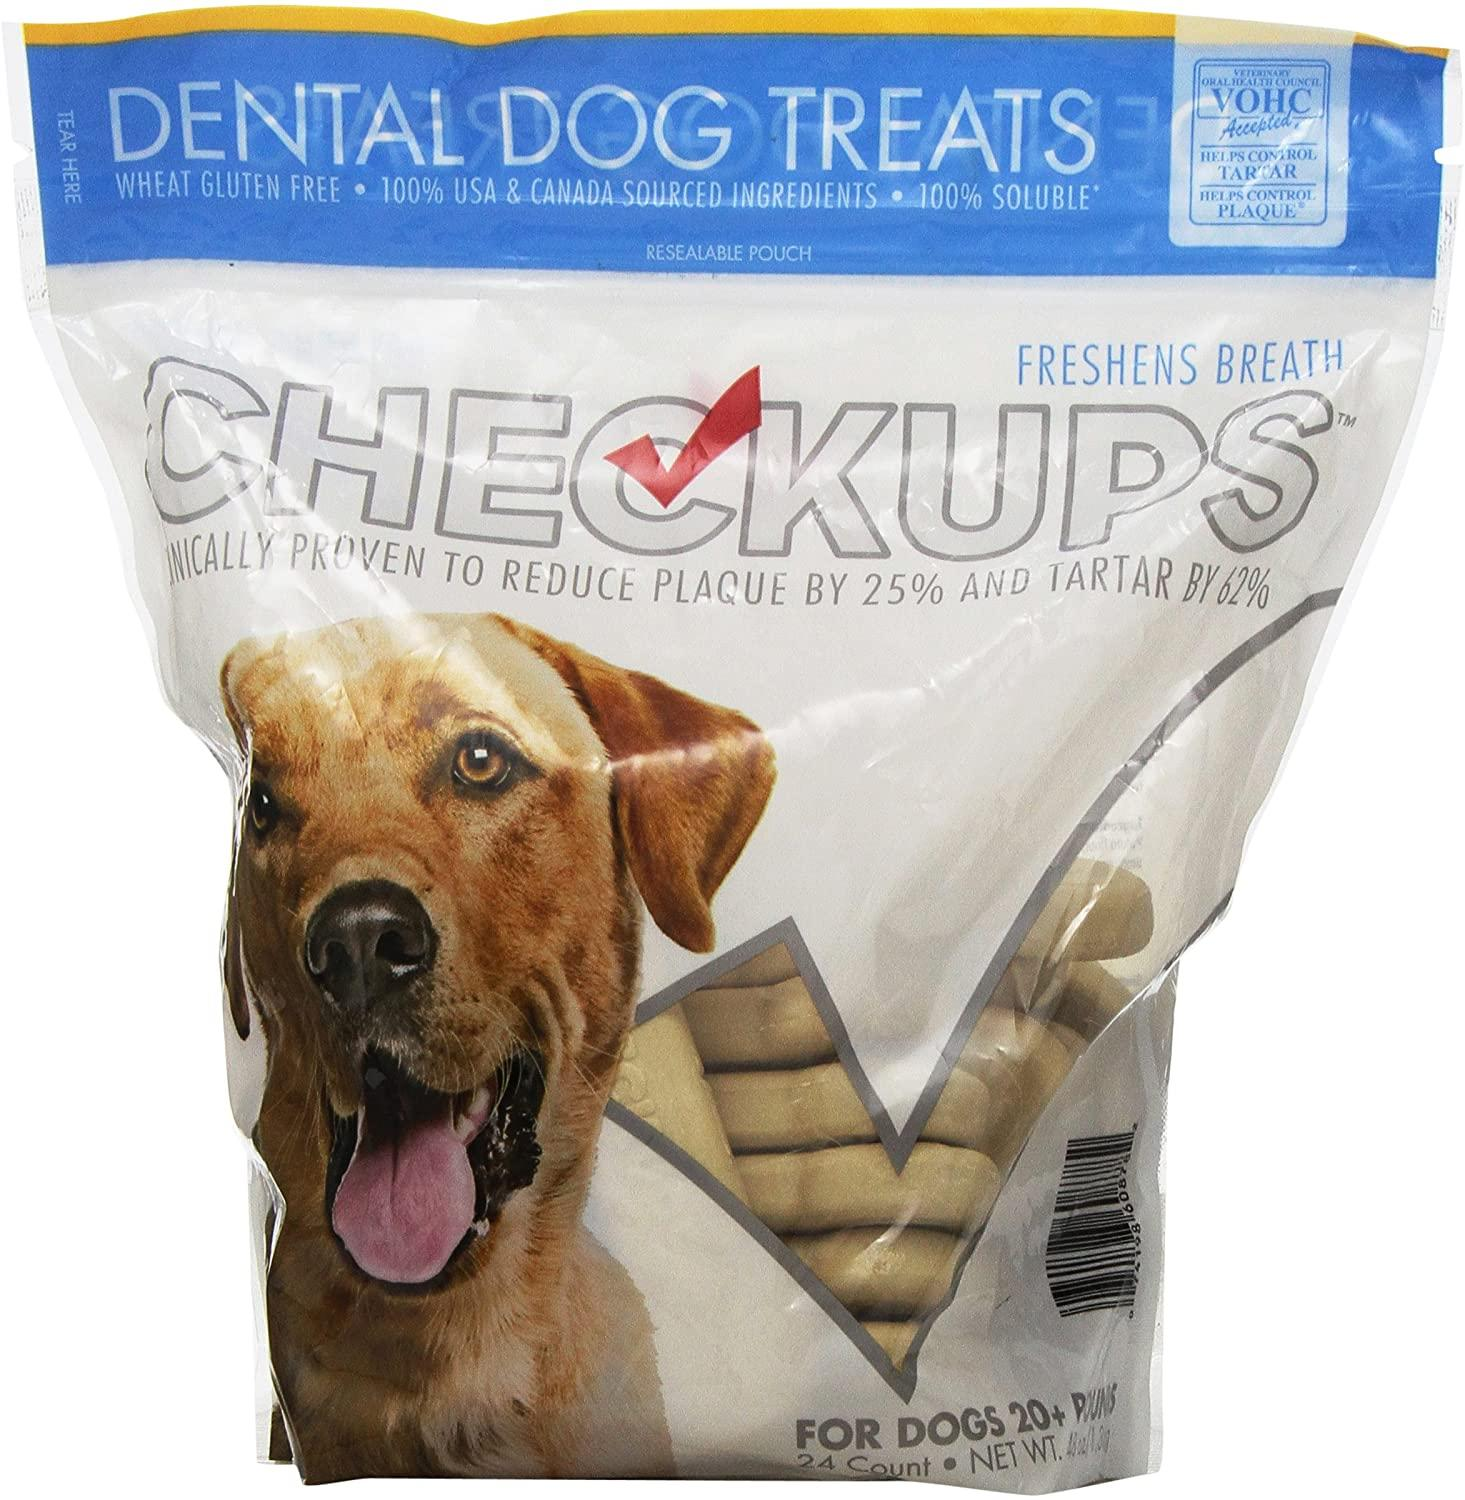 Checkups Dental Dog Treats Image